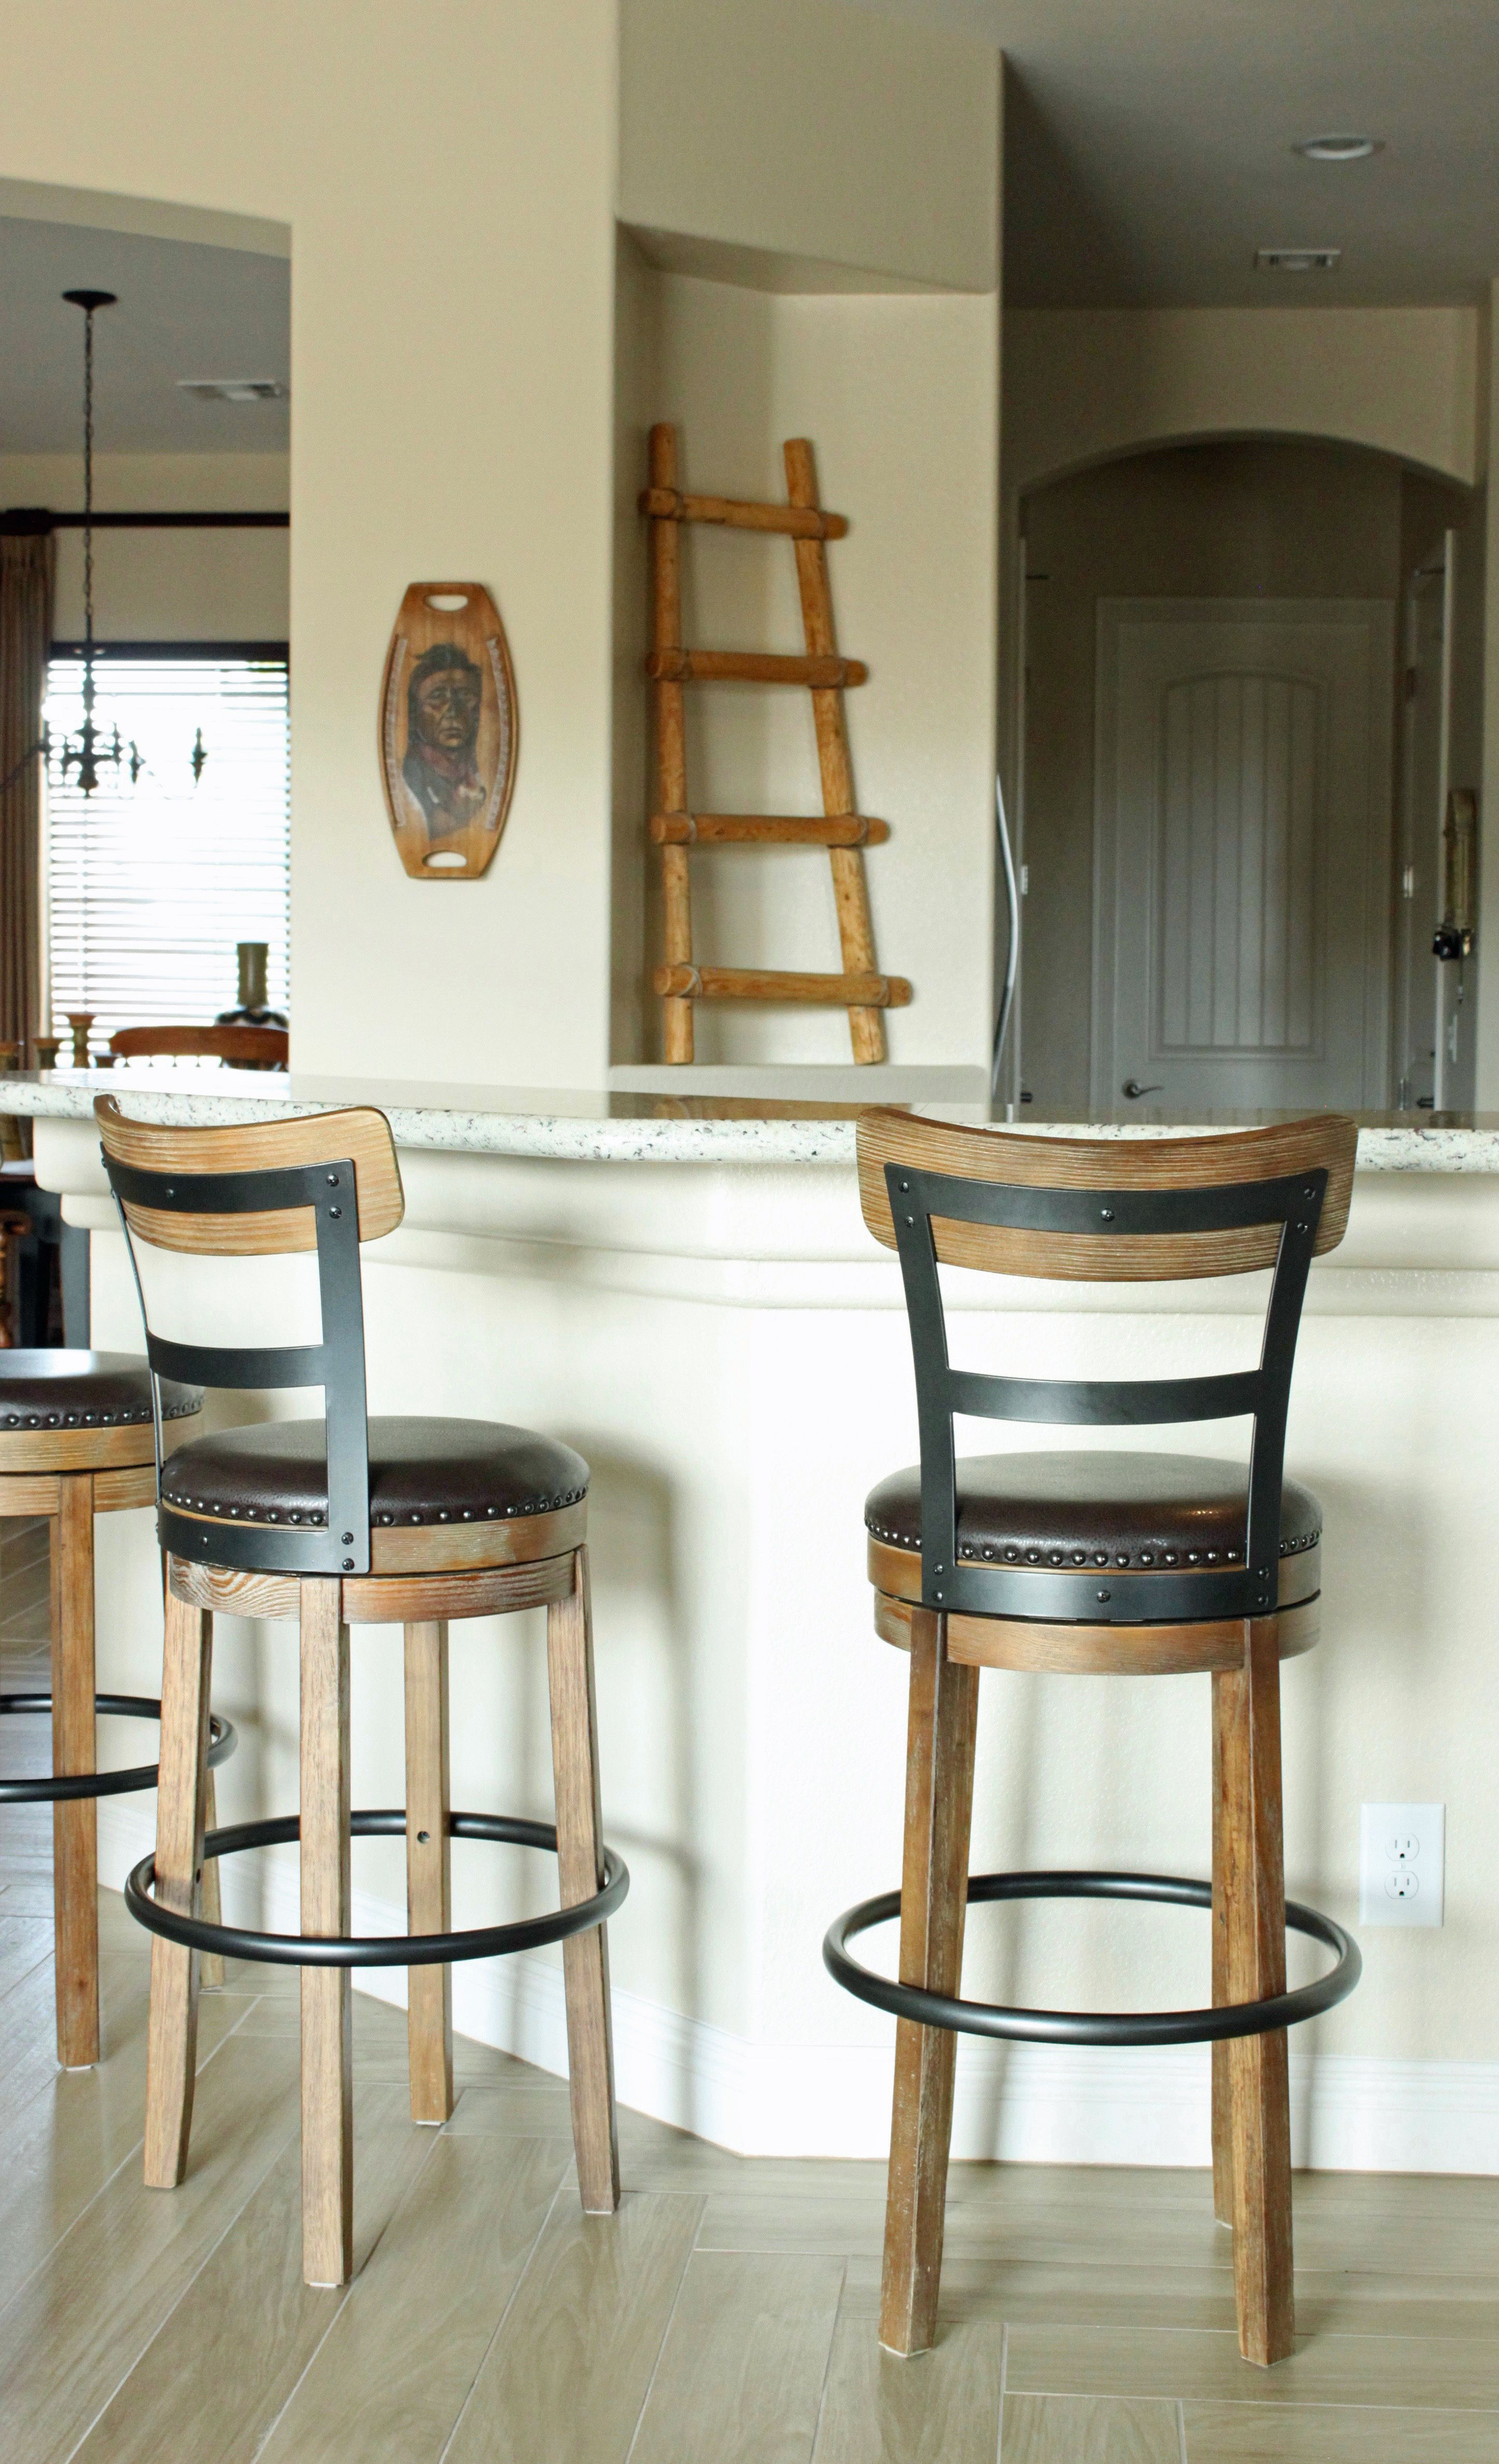 Swivel Bar Stools From Ashley Furniture Interior Design